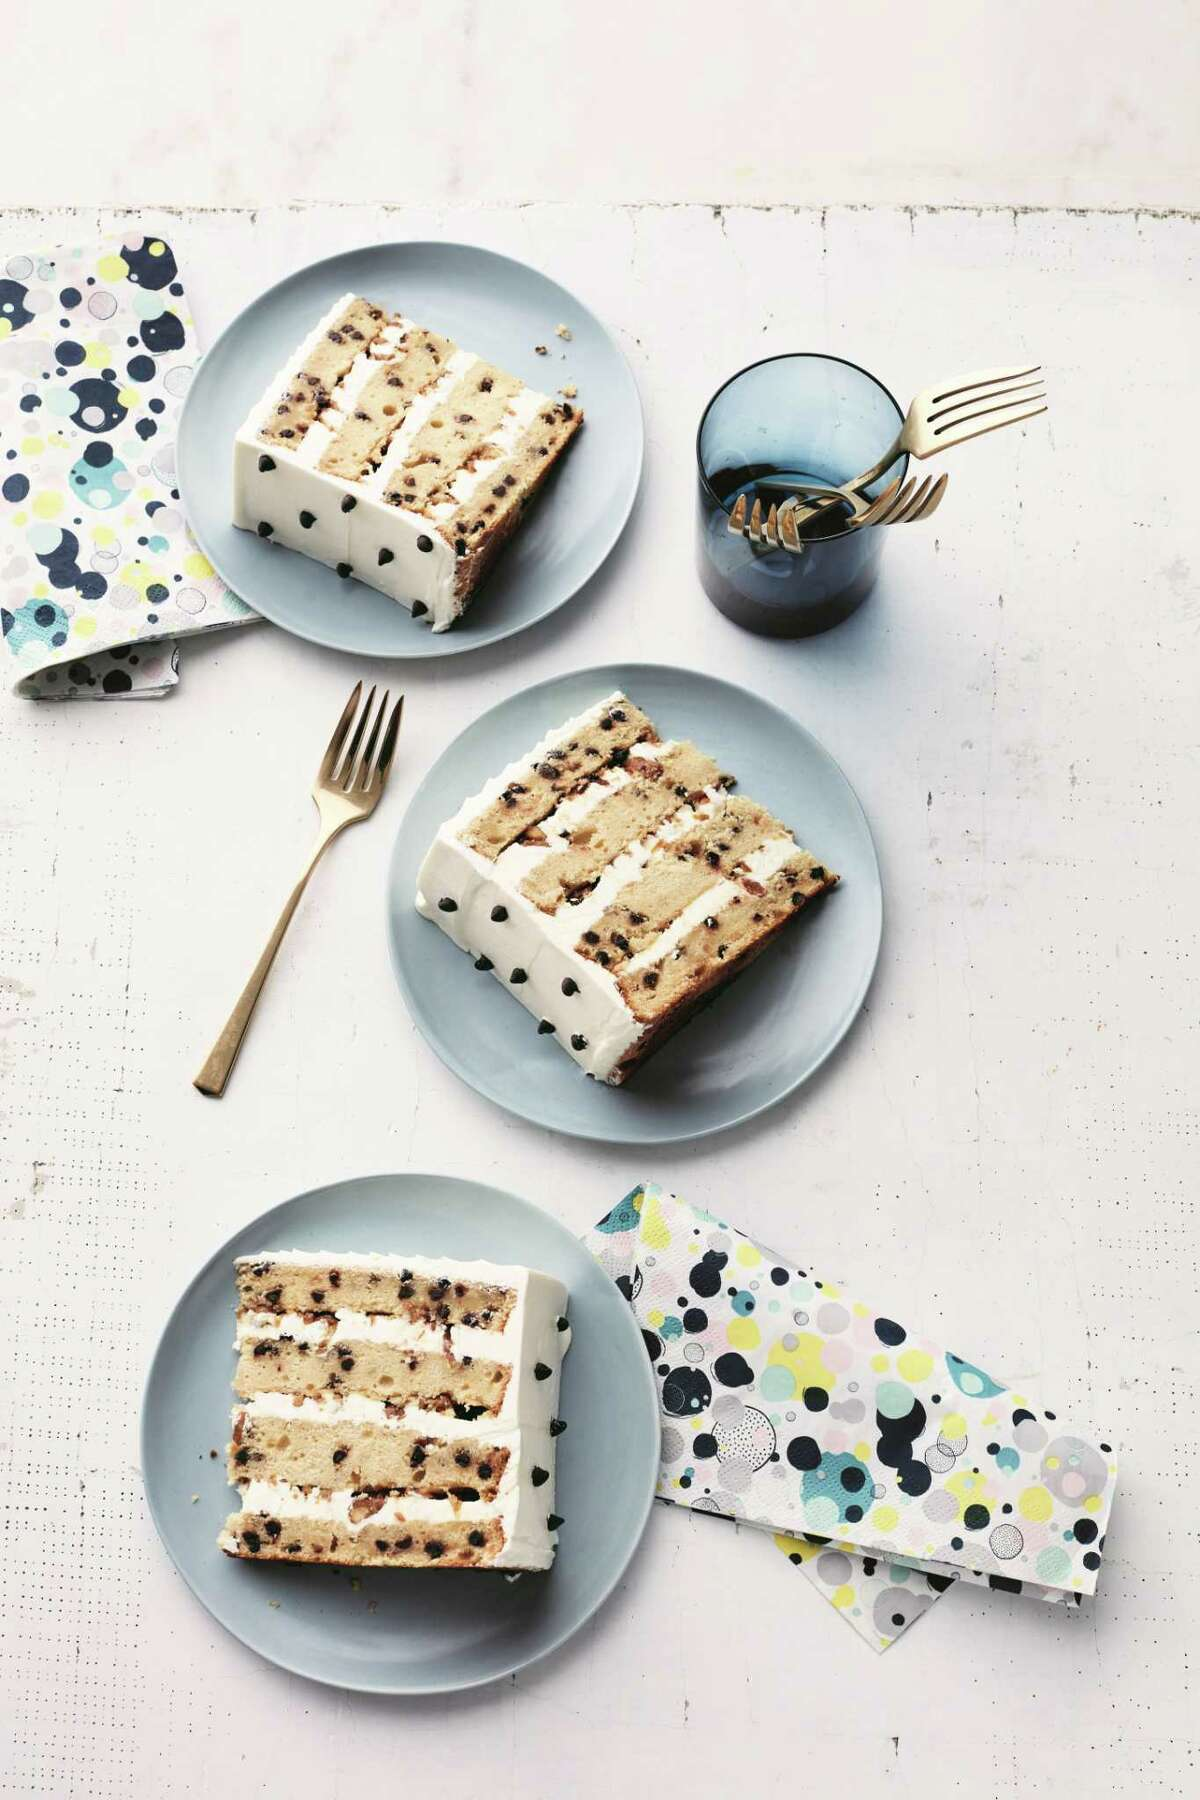 """Milk-and-Cookies Cake from """"Martha Stewart's Cake Perfection"""" cookbook."""